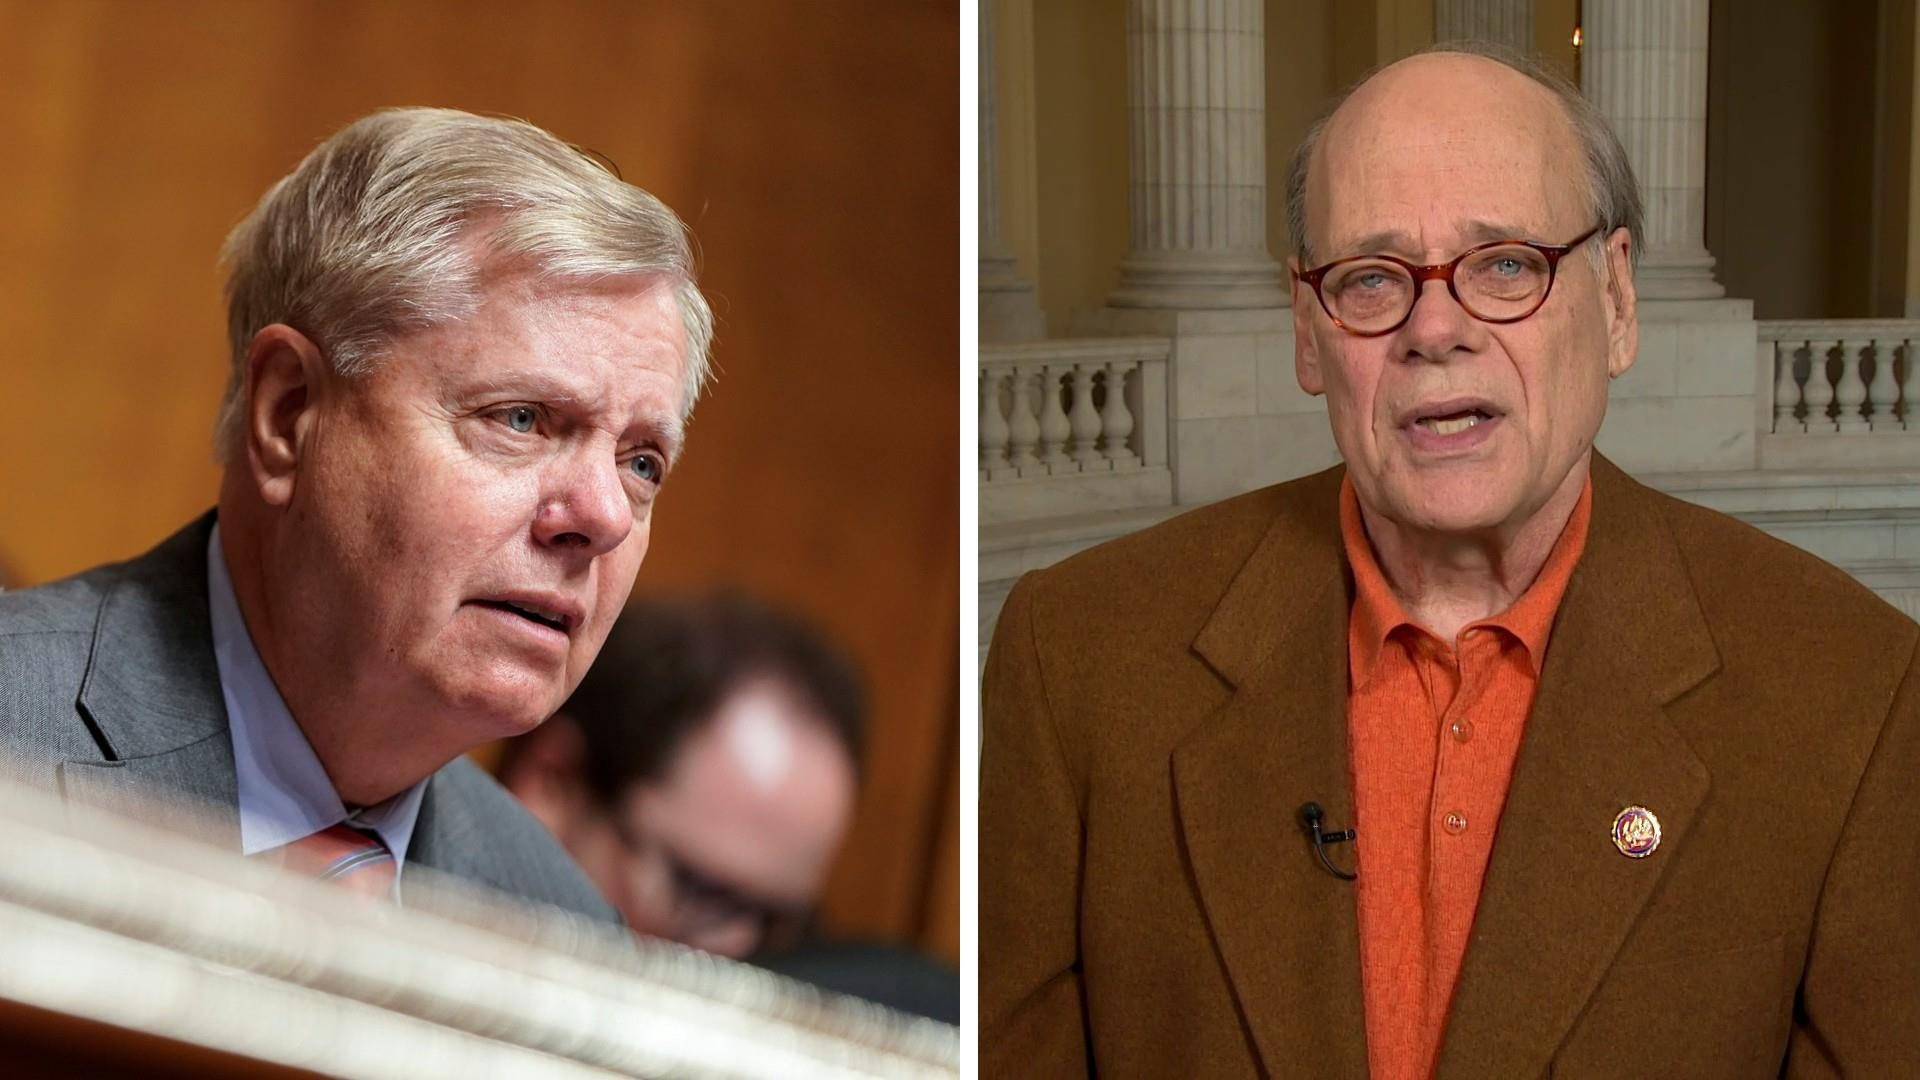 Rep. Cohen: Graham's lack of understanding of 'high crimes' shown during Clinton trial — and today